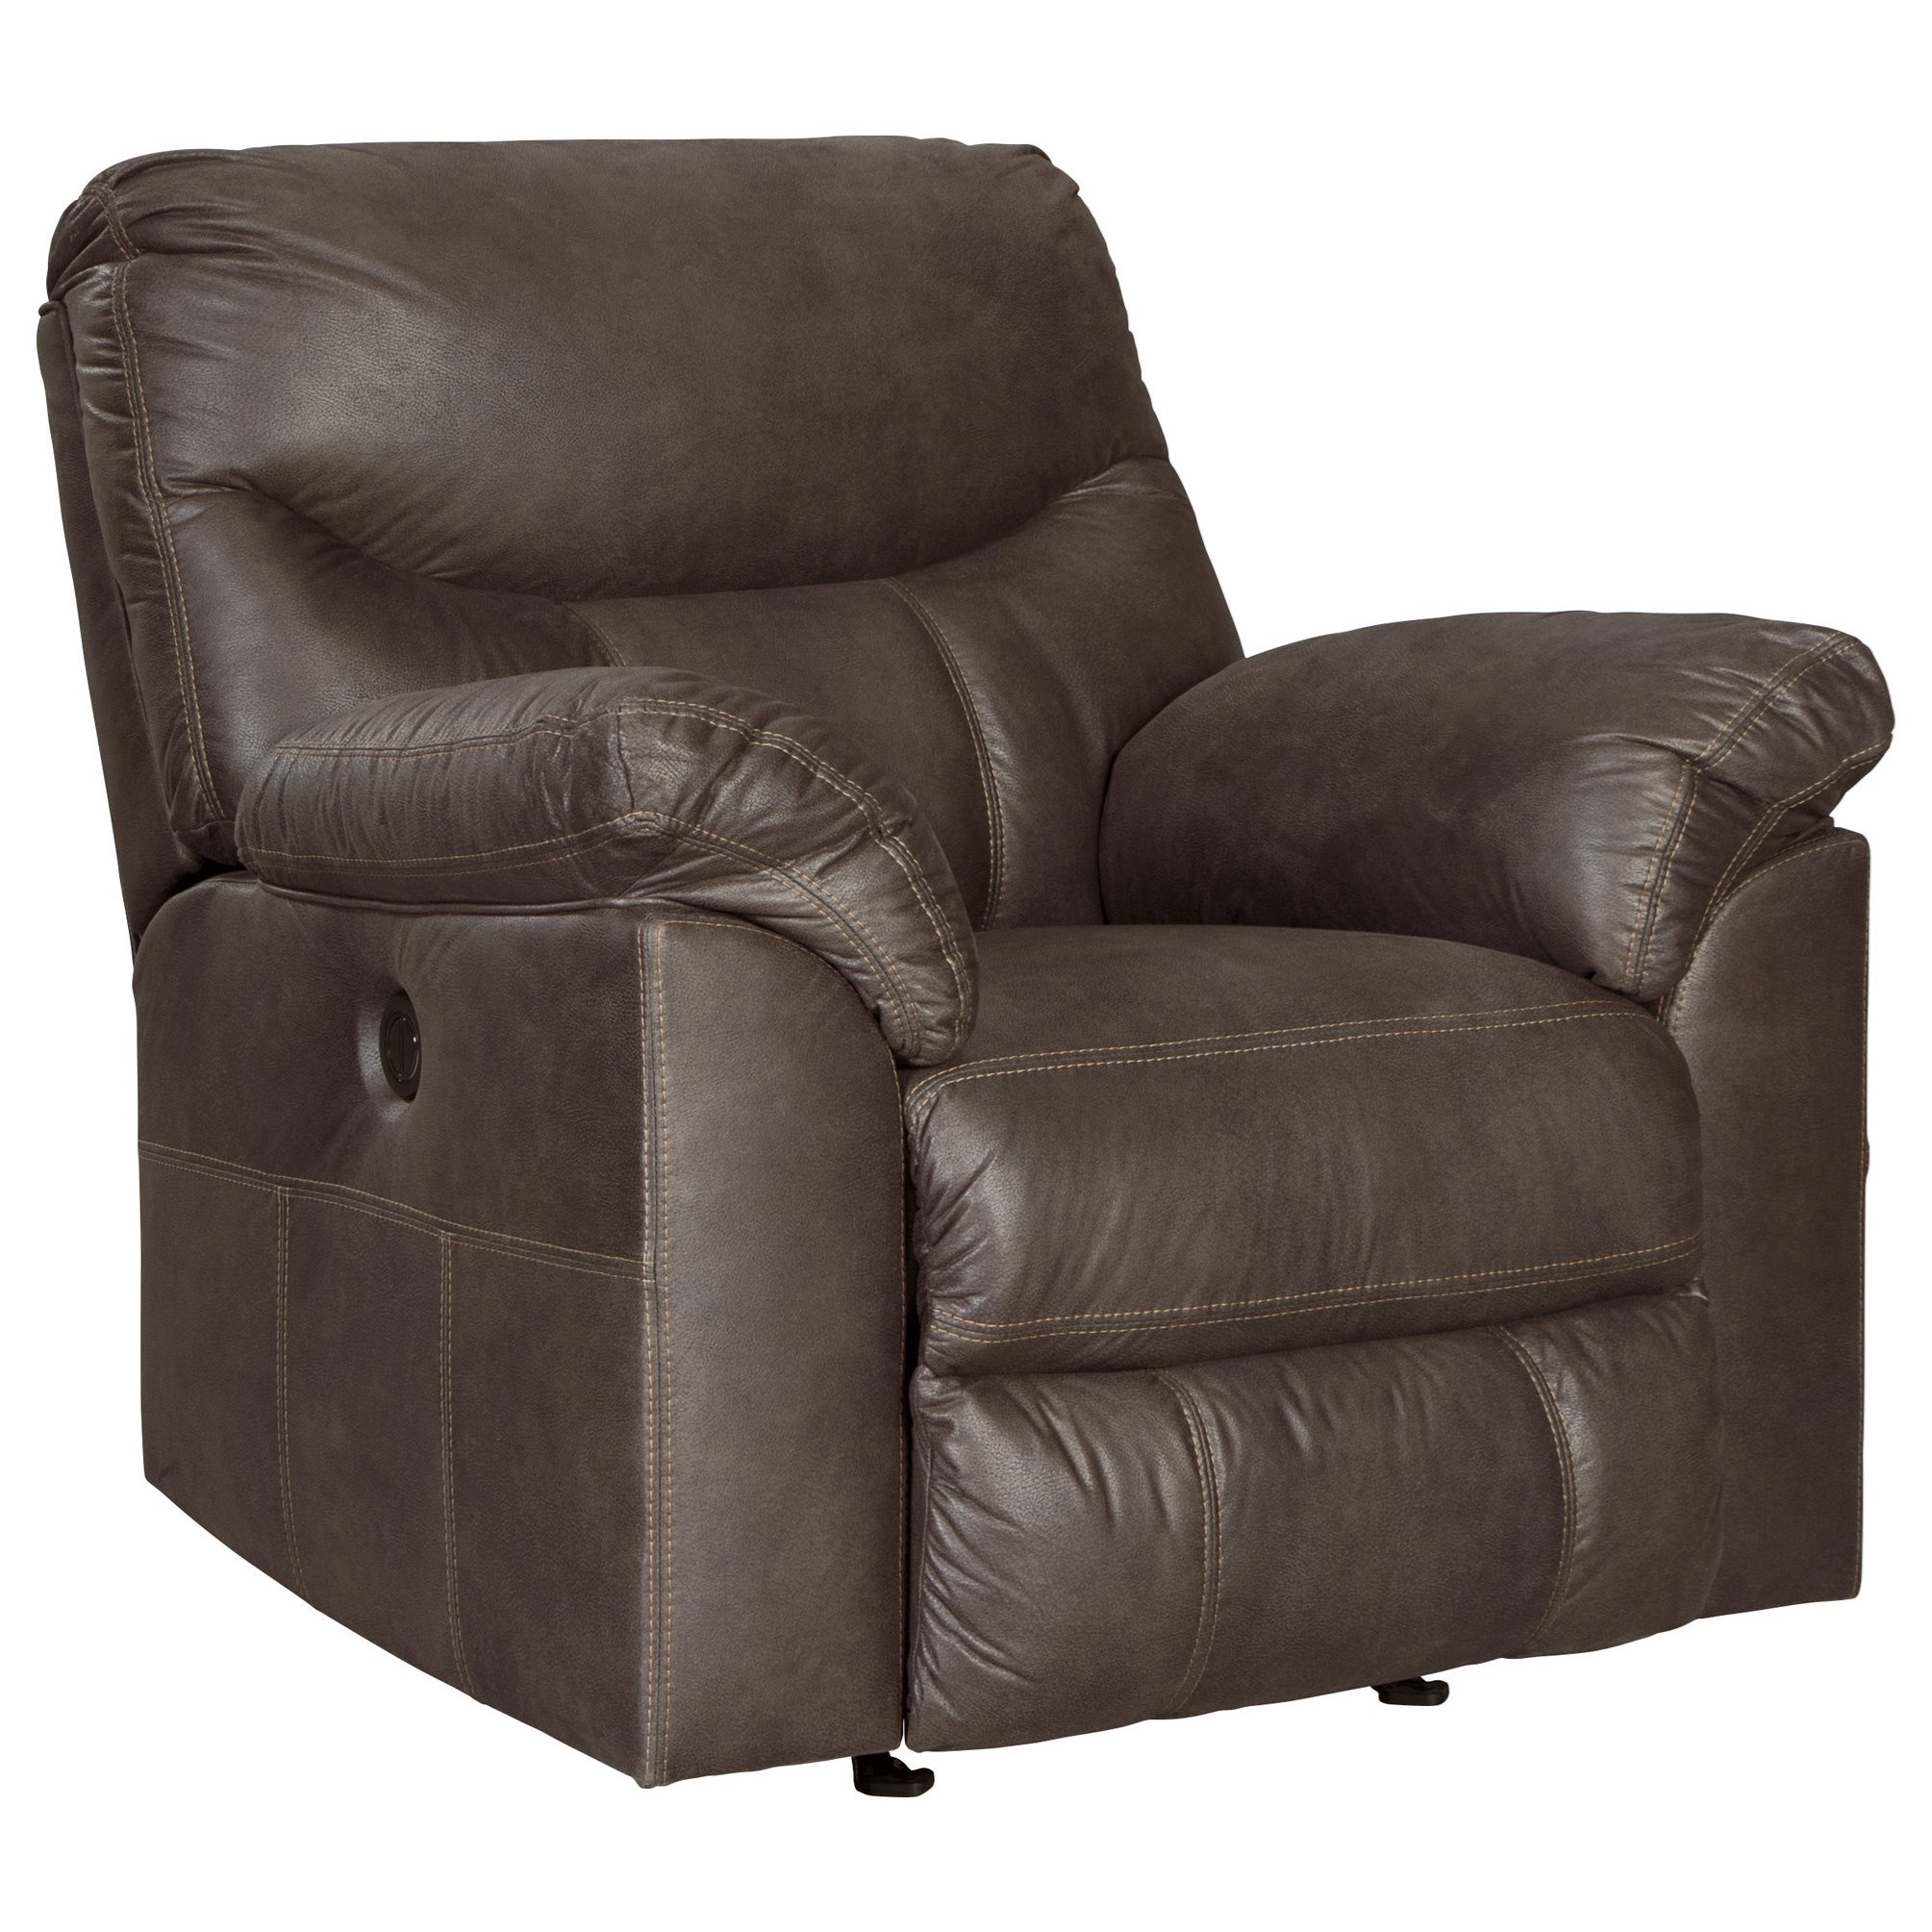 Boxberg Rocker Recliner by Signature Design by Ashley at Value City Furniture